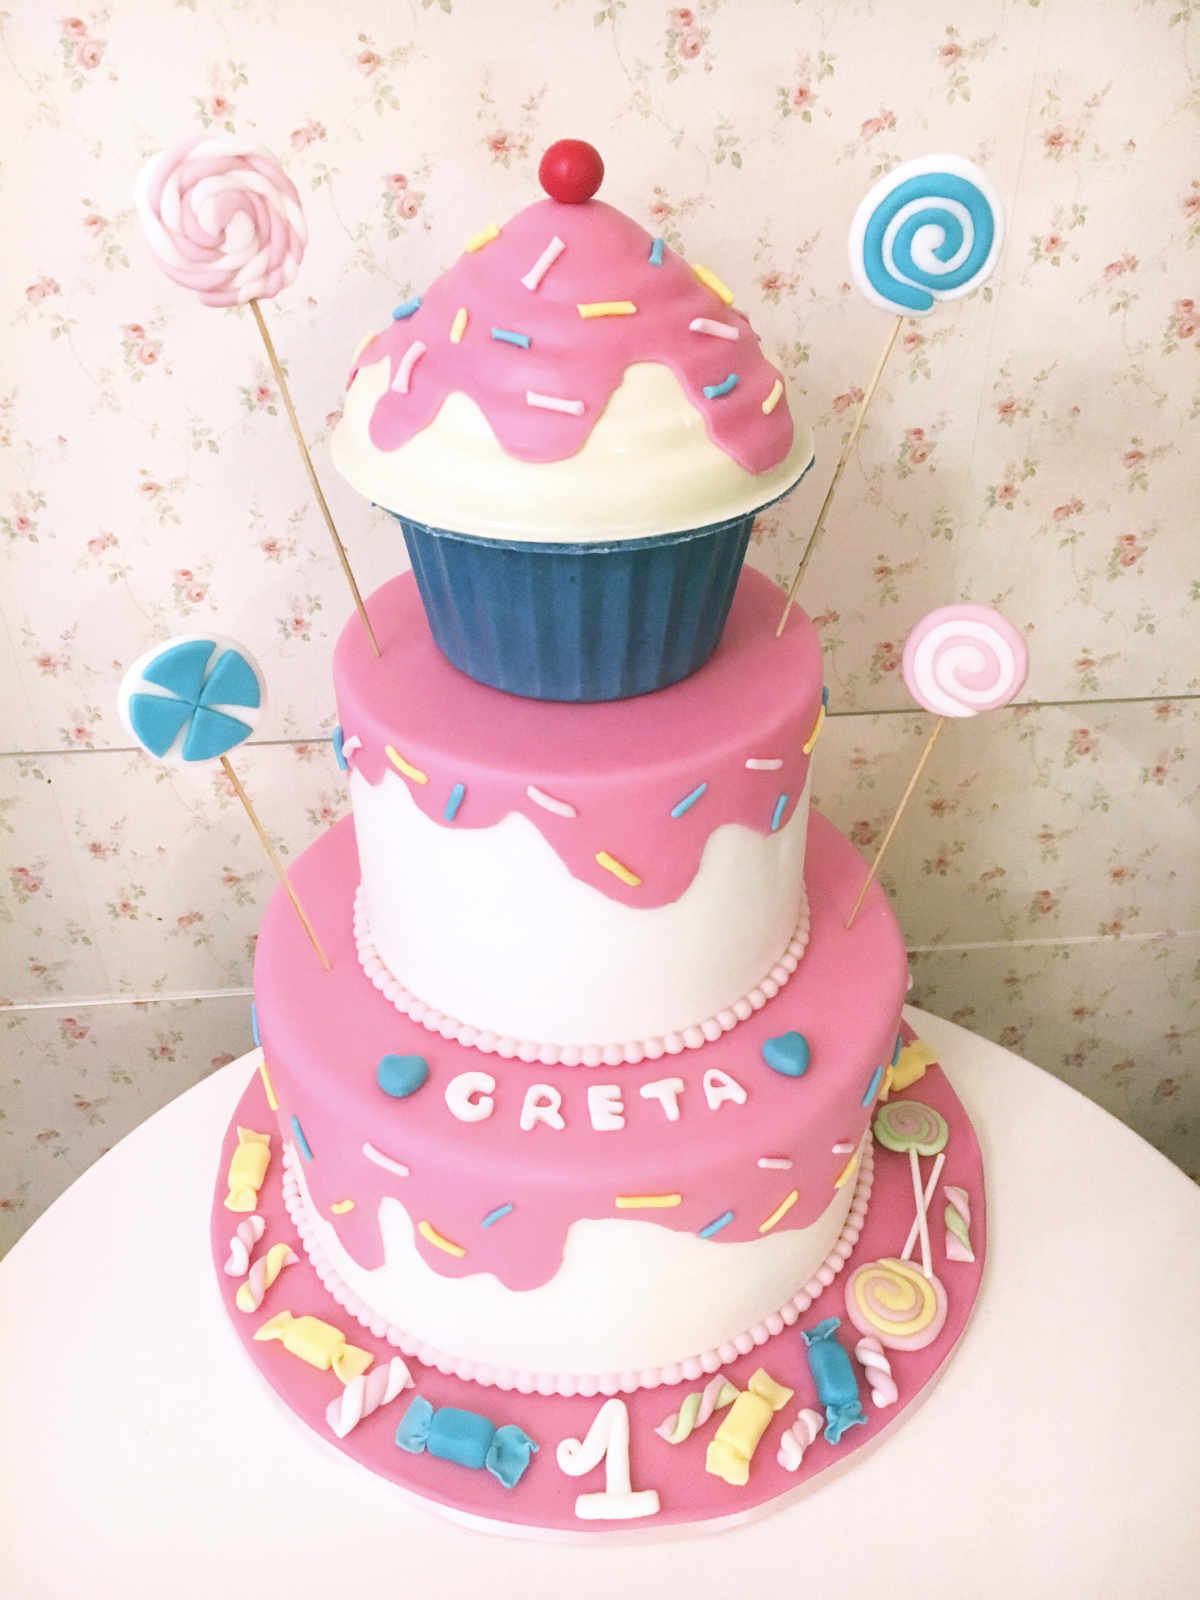 Sweet Lab Torino - torta per compleanno